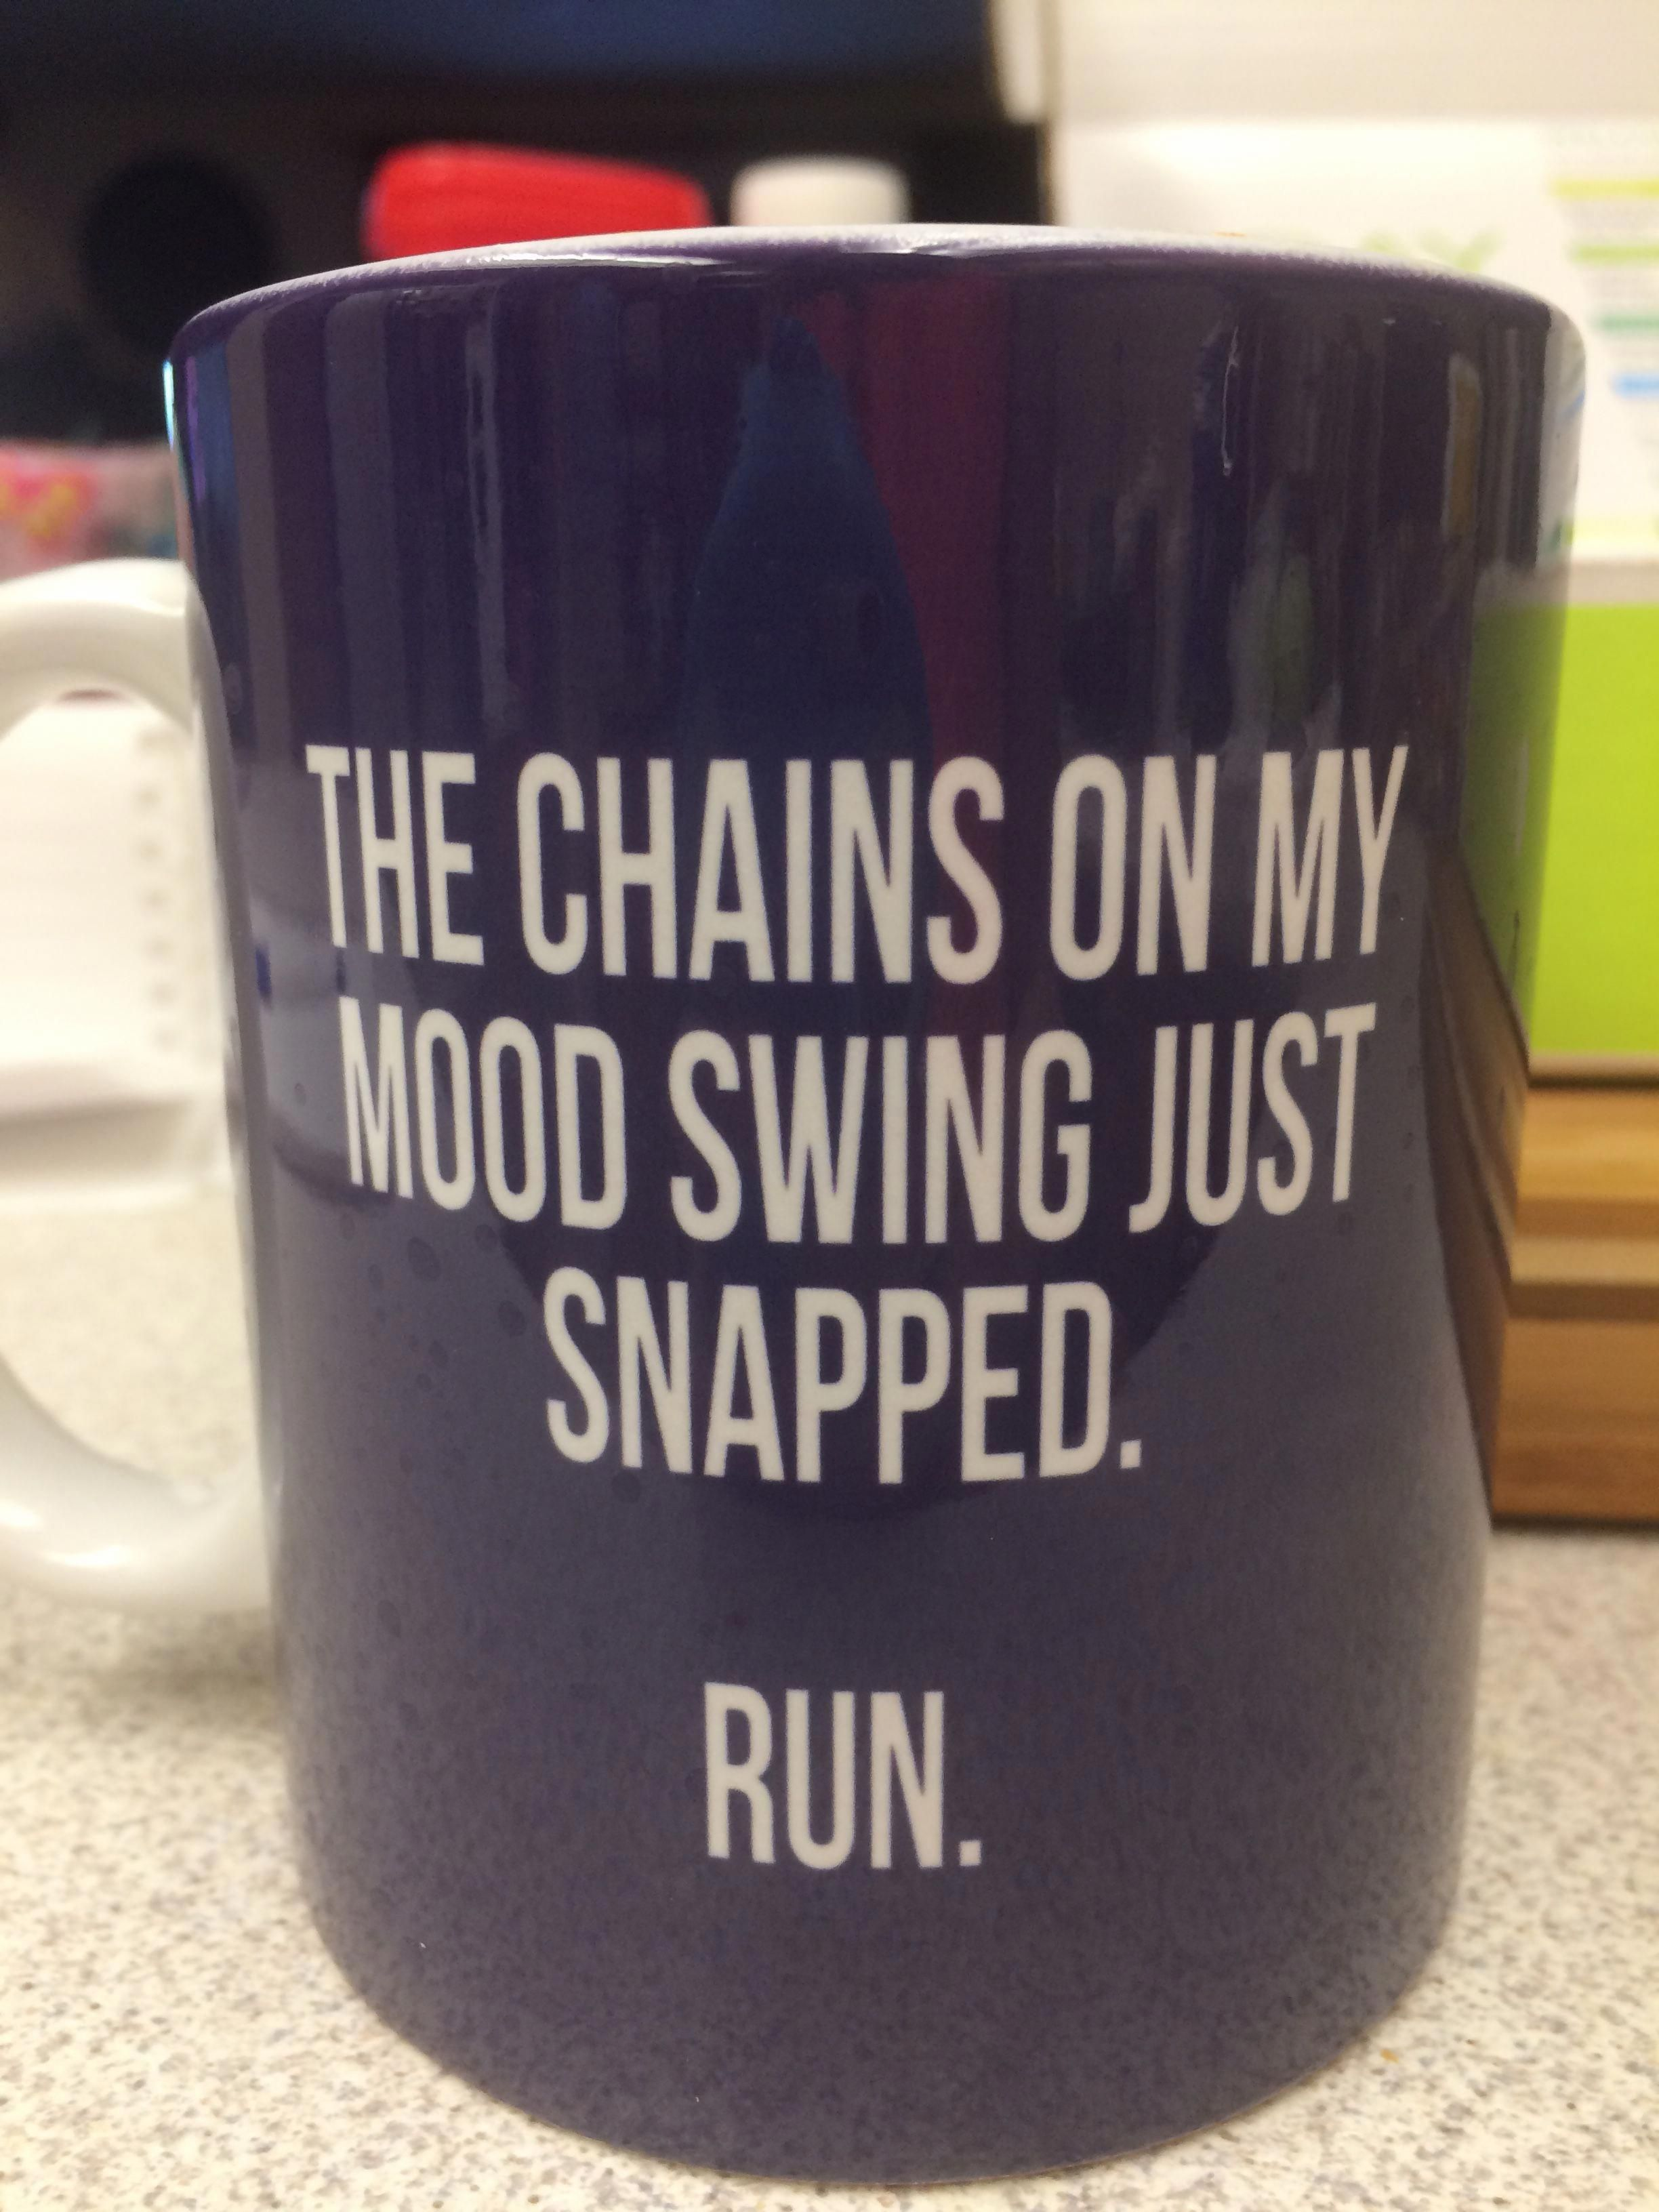 13 Funny Coffee Mugs Prefect for Relaxing at Office - Cool Things to Buy 247